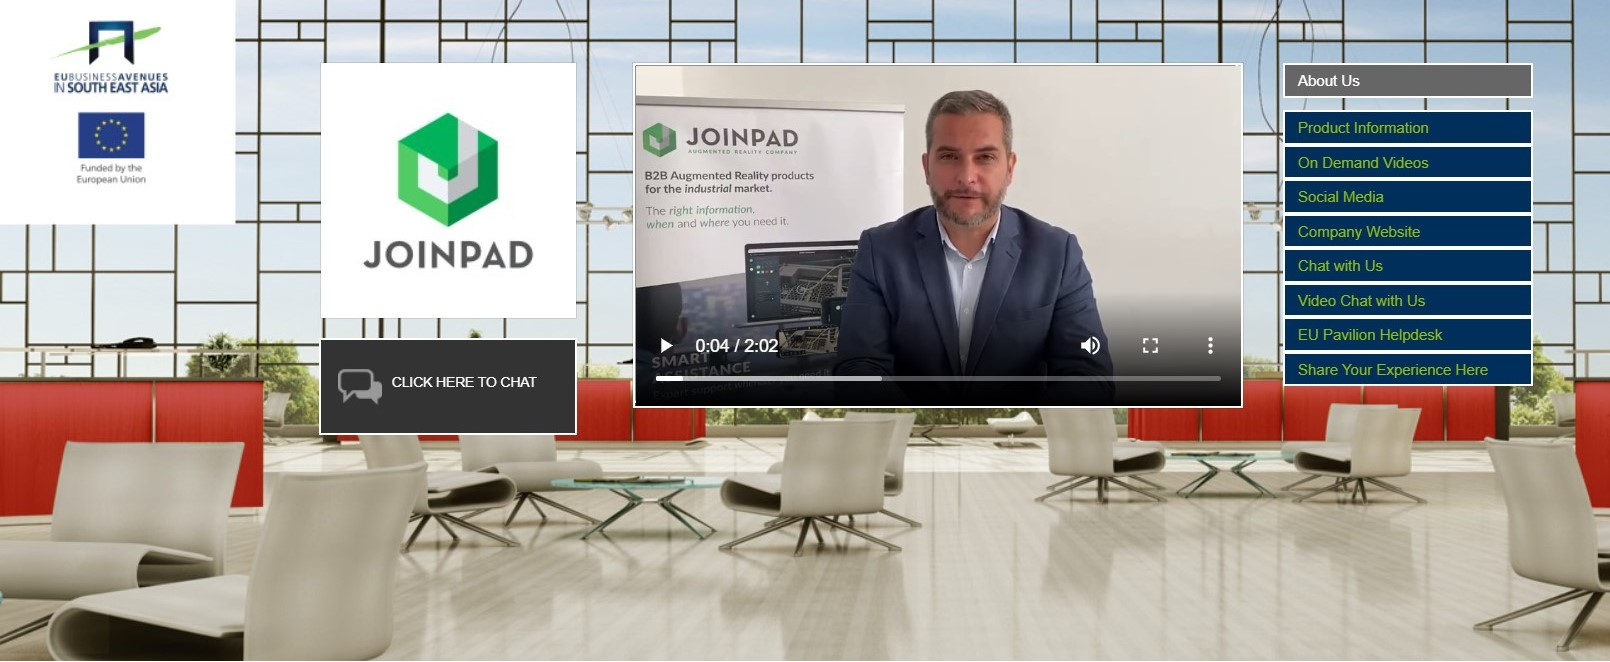 joinpad virtual booth at connectech asia 2020